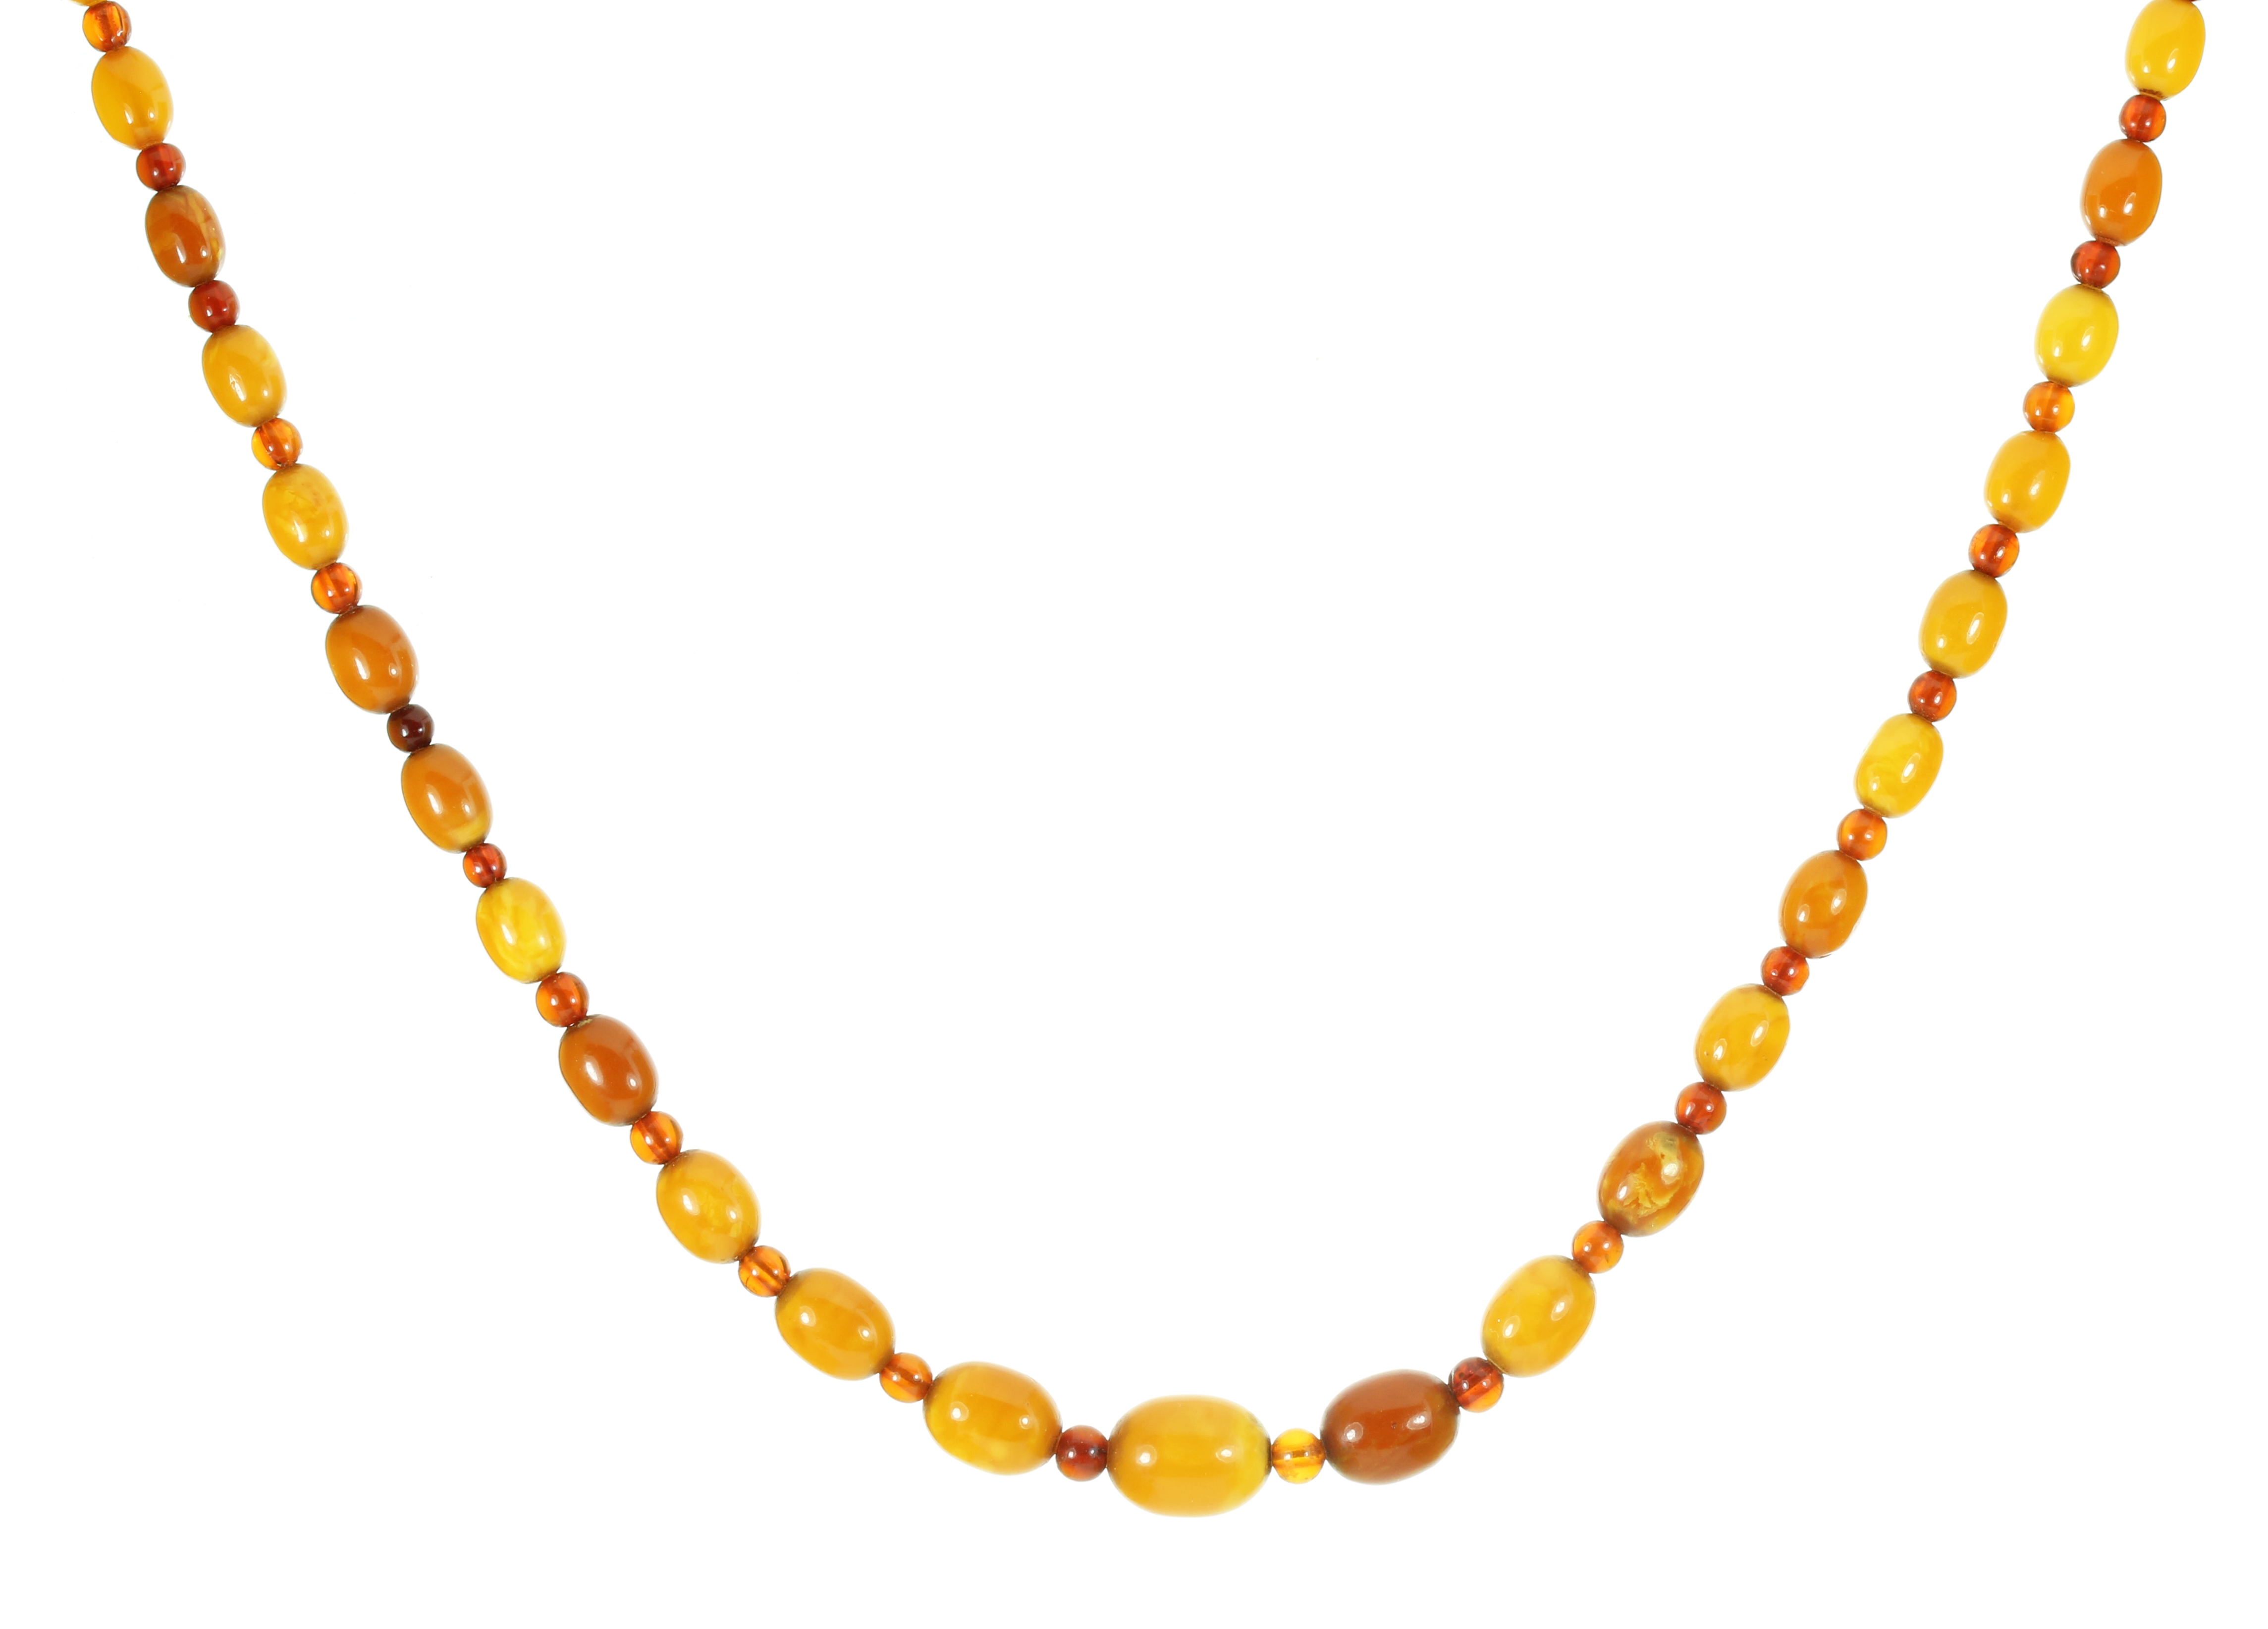 Los 16 - AN ANTIQUE NATURAL AMBER BEAD NECKLACE comprising a single row of forty-one gradated polished oval